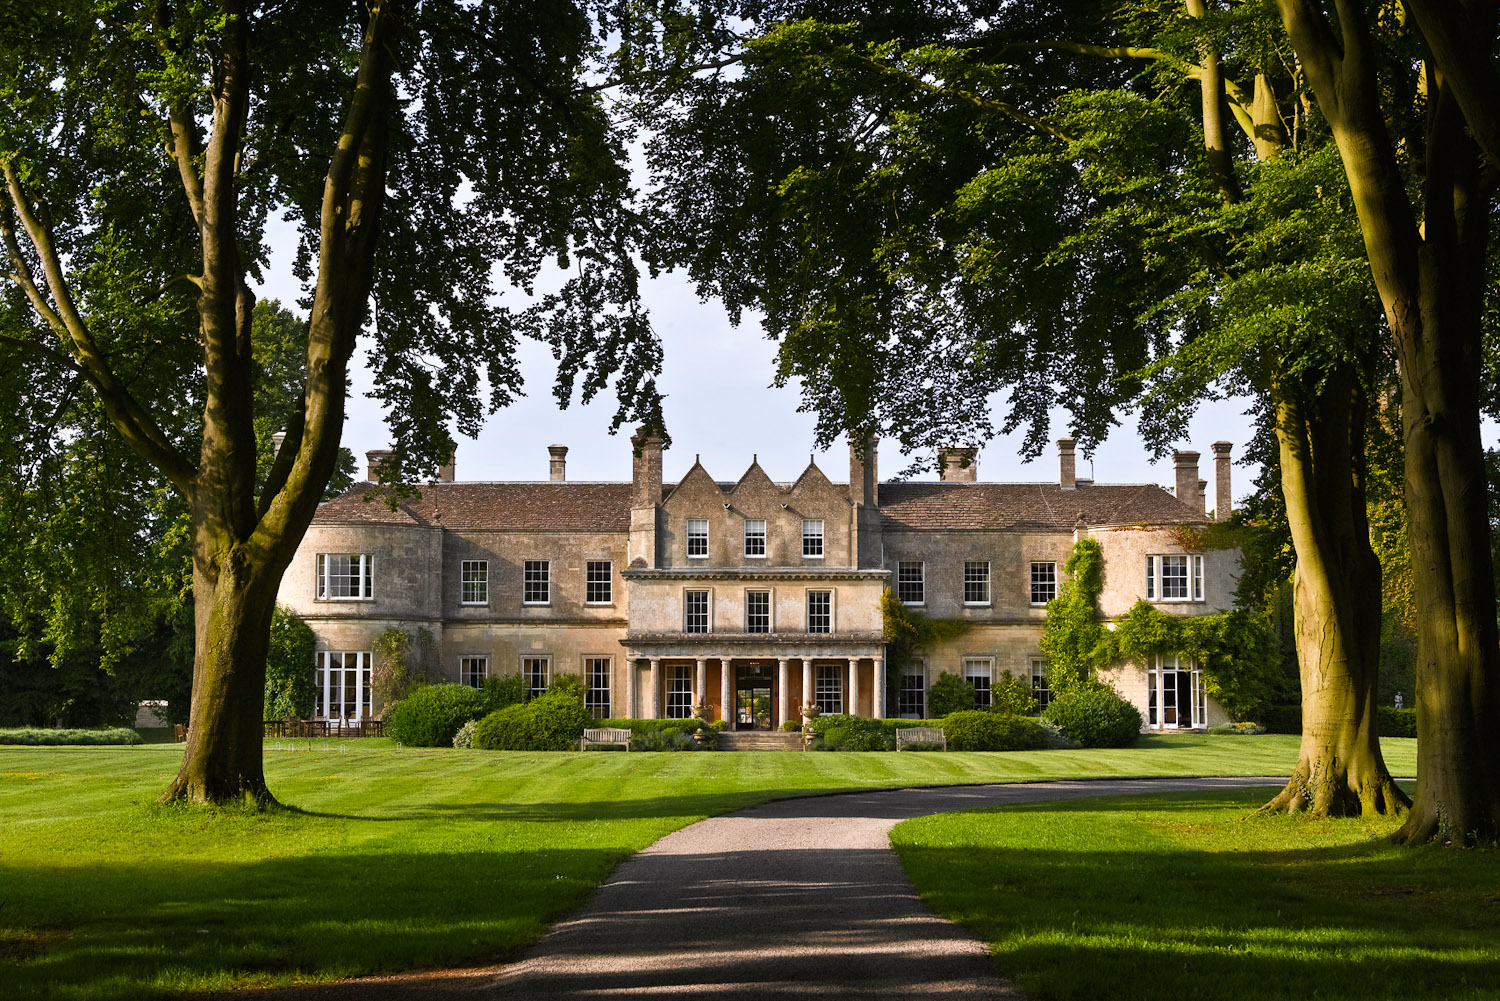 Lucknam Park Hotel and Spa in Colerne, UK.